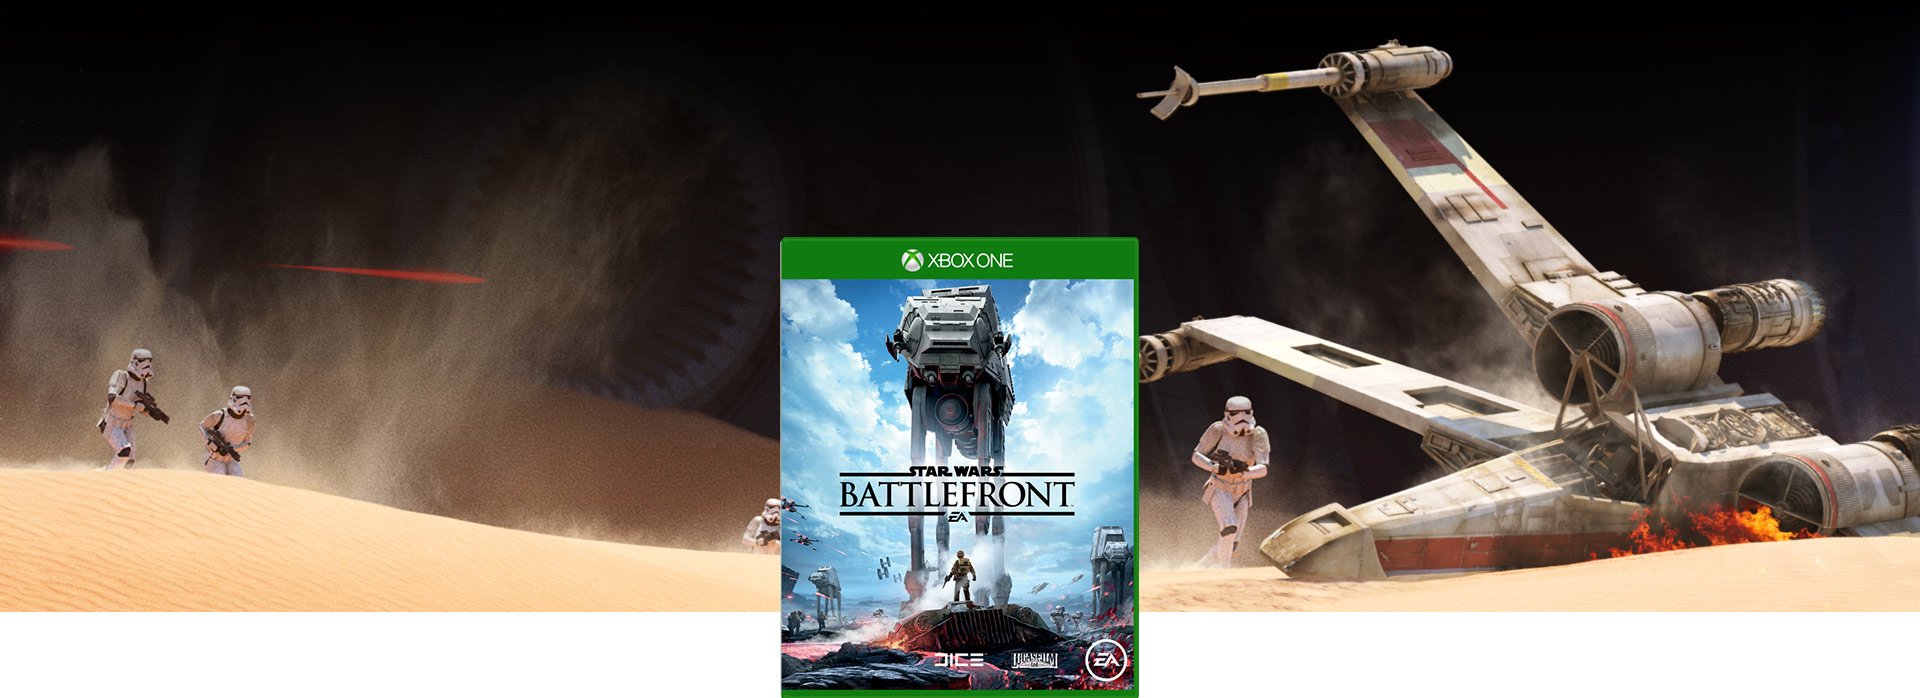 Star Wars Battlefront-coverbillede